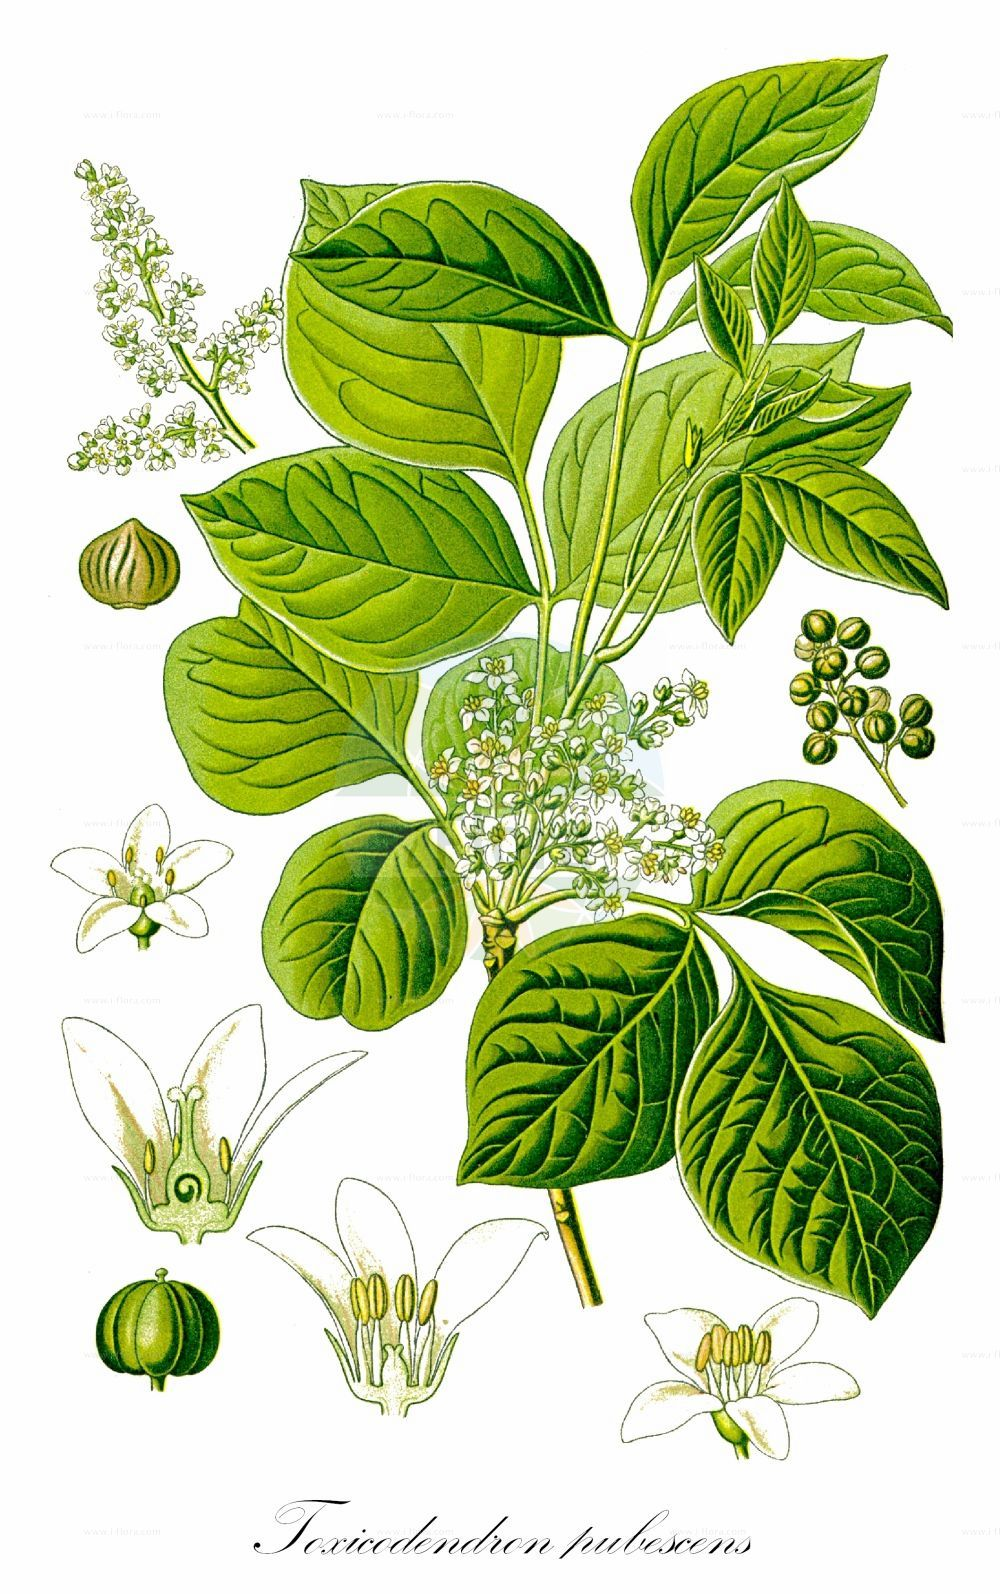 Historische Abbildung von Toxicodendron pubescens (Eichenblaettriger Giftsumach - Atlantic Poison Oak). Das Bild zeigt Blatt, Bluete, Frucht und Same. ---- Historical Drawing of Toxicodendron pubescens (Eichenblaettriger Giftsumach - Atlantic Poison Oak).The image is showing leaf, flower, fruit and seed. (Toxicodendron pubescens,Eichenblaettriger Giftsumach,Atlantic Poison Oak,Rhus,Rhus toxicodendron,,Behaarter Gift-Sumach,Poison Oak,Poison Ivy,Toxicodendron,Giftsumach,Poison Oak,Anacardiaceae,Kaschugewaechse;Pistaziengewaechse;Sumachgewaechse,Cashew family,Blatt,Bluete,Frucht,Same,leaf,flower,fruit,seed,Thomé (1885))